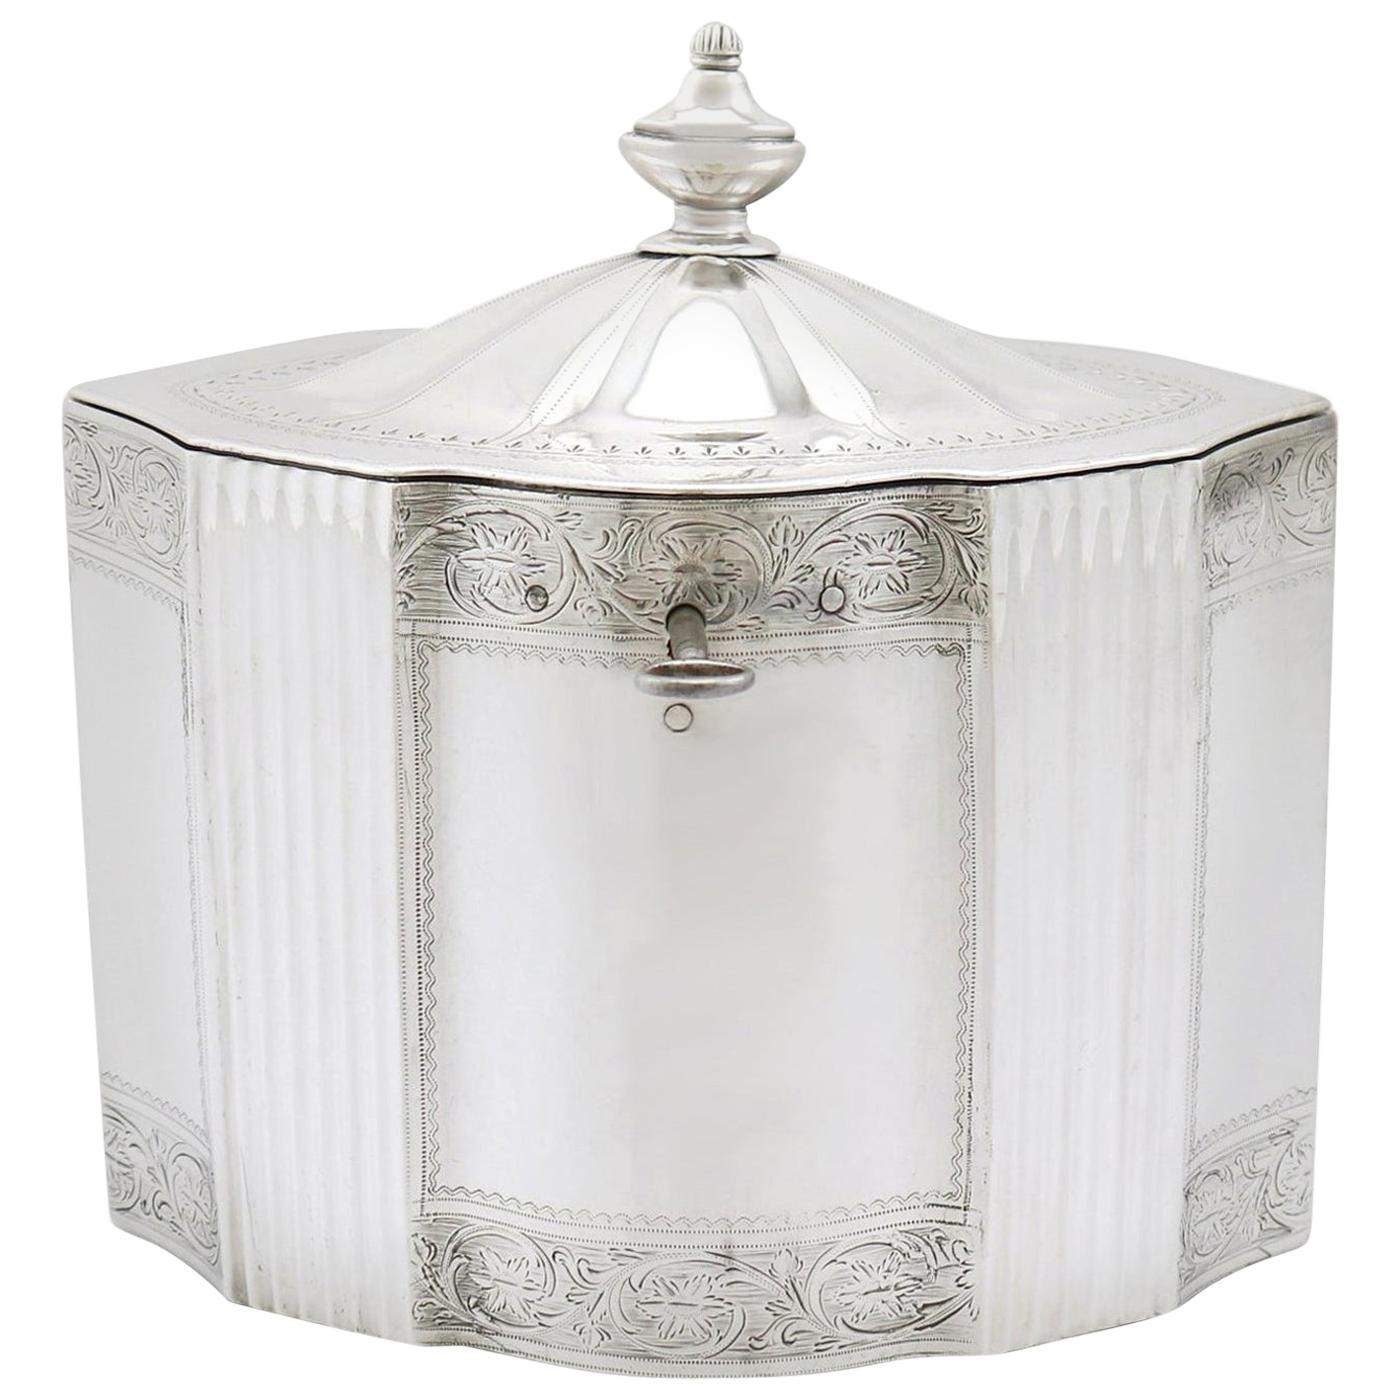 Antique George III 1790s Sterling Silver Locking Tea Caddy